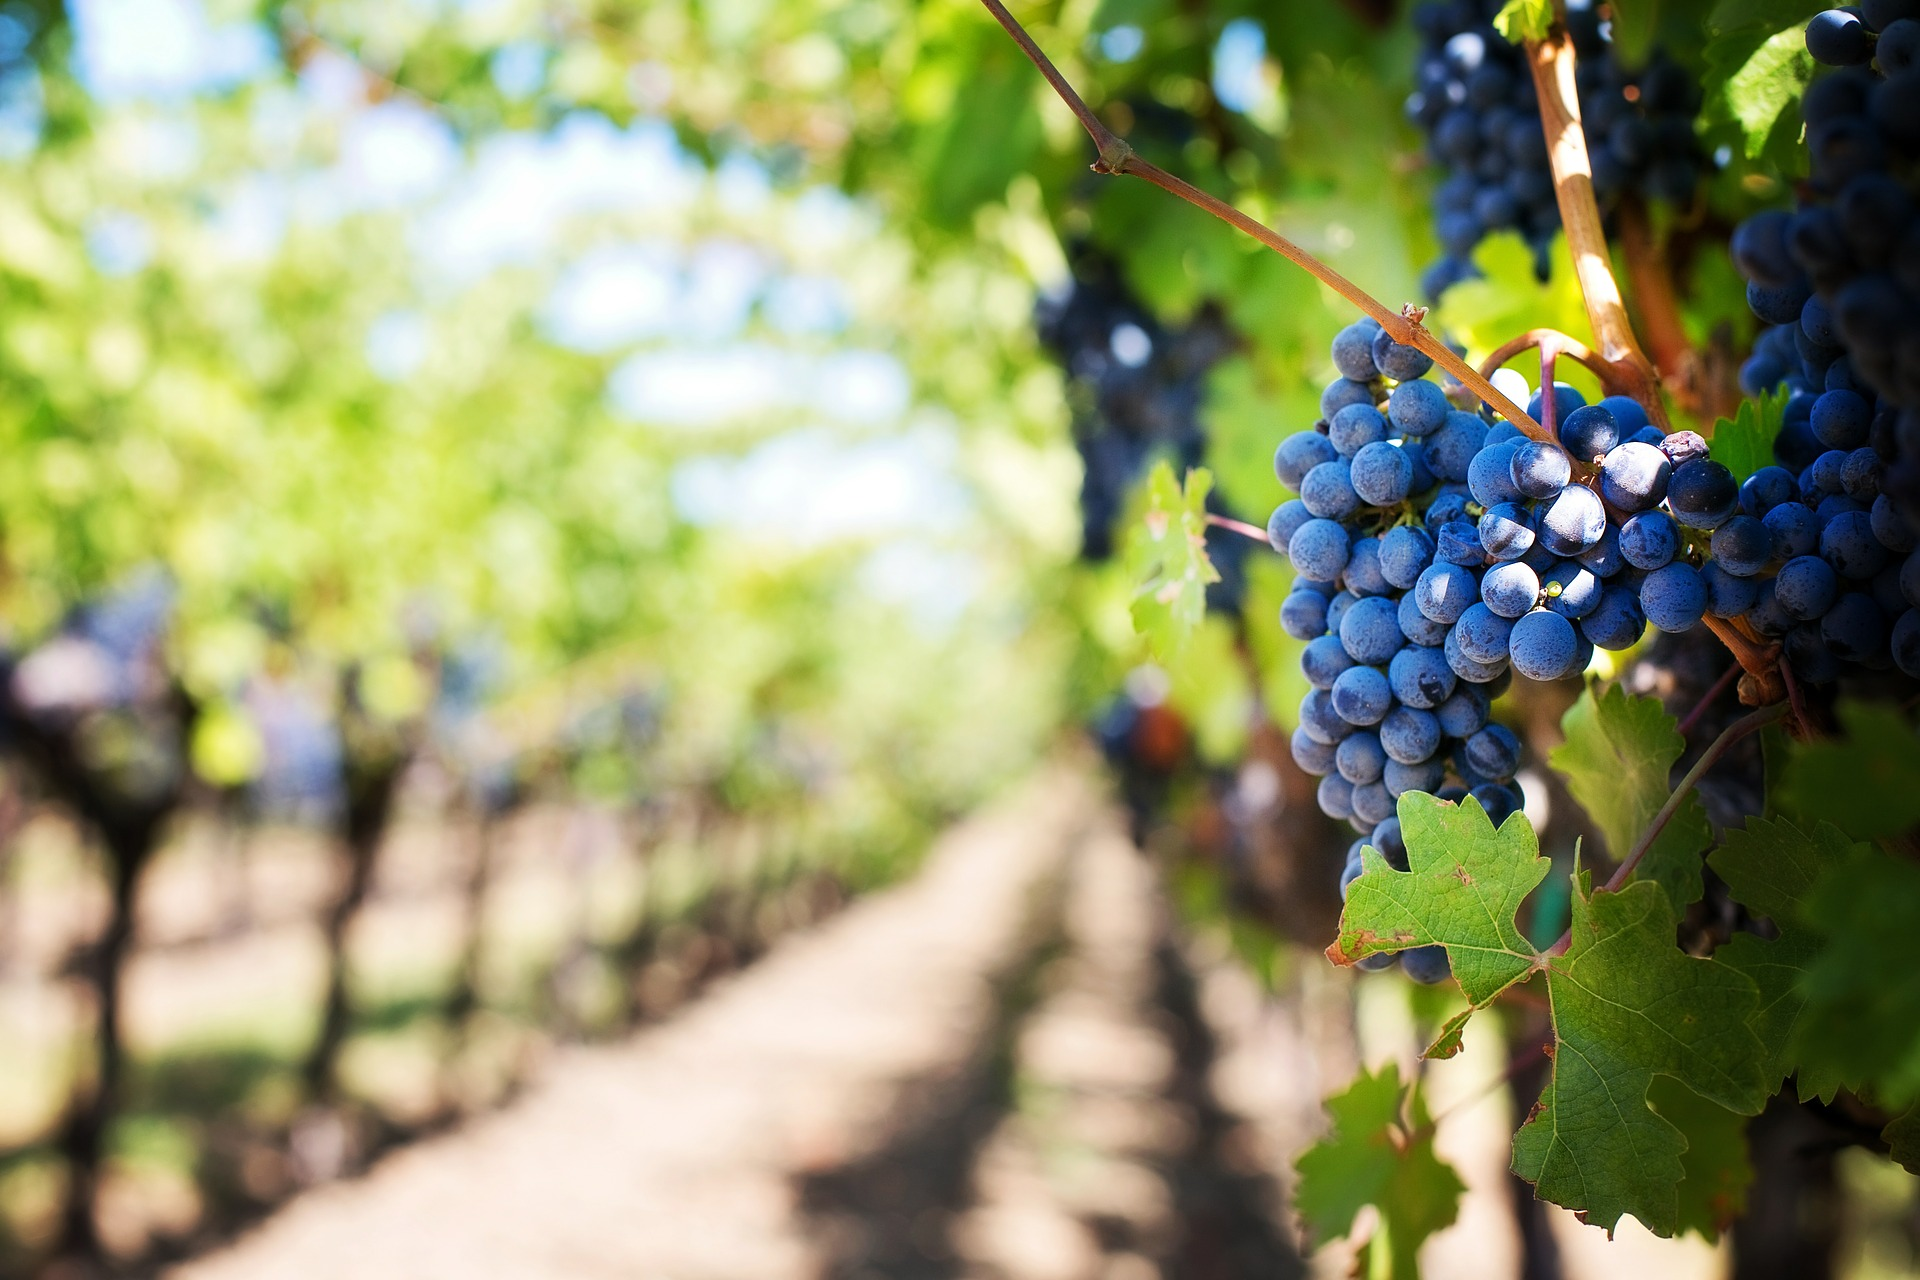 Vineyard | Discover Your South America Blog